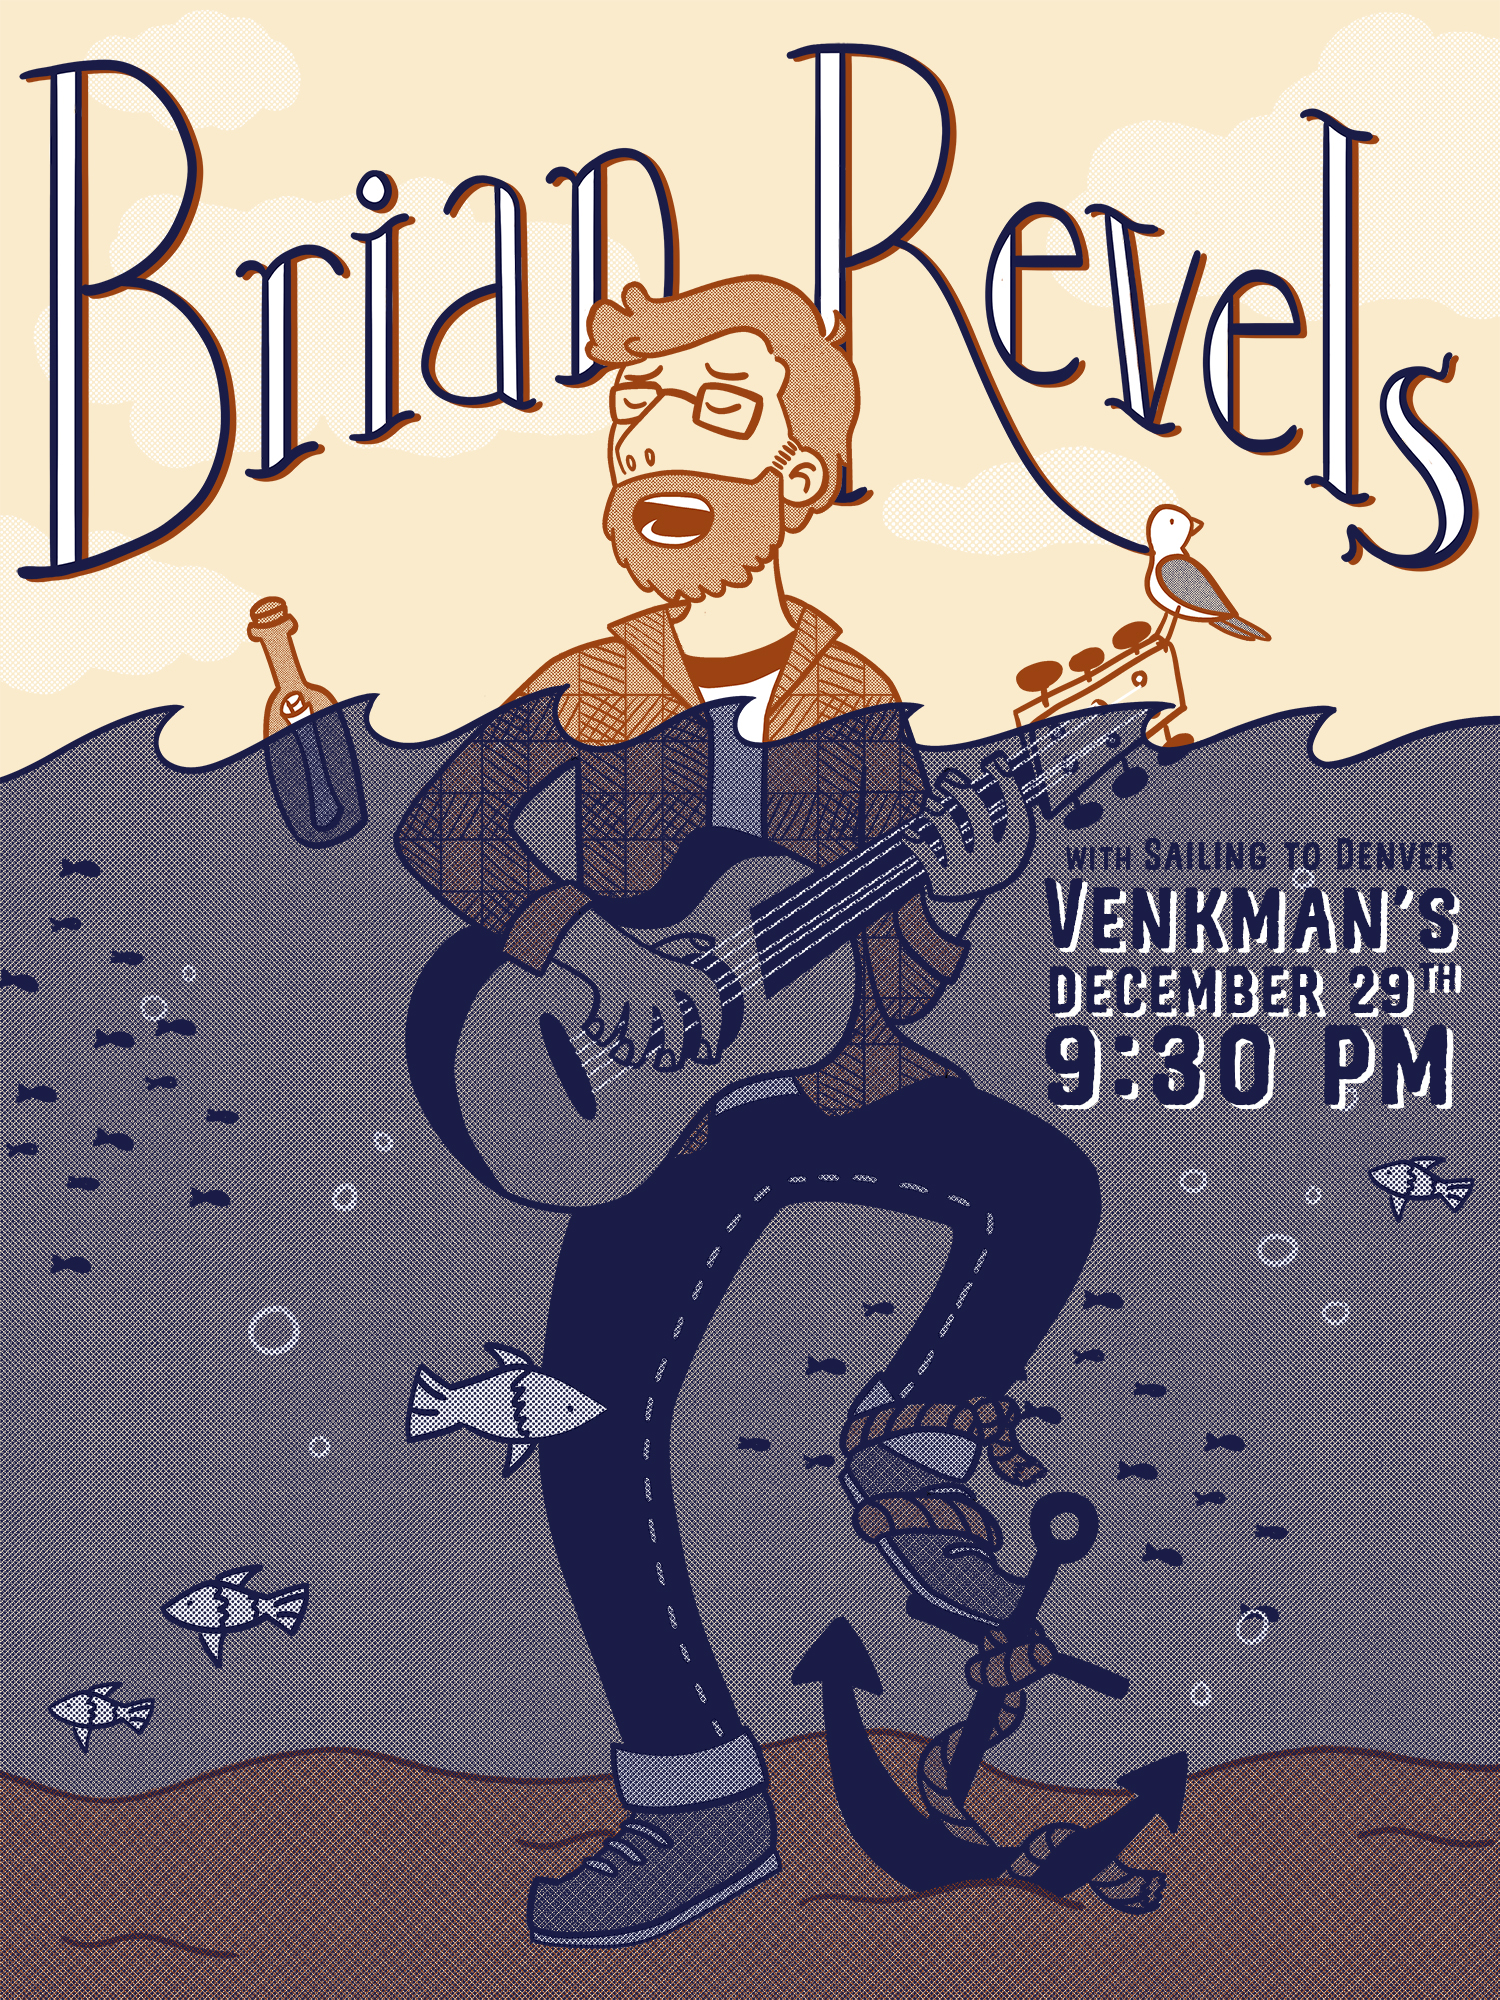 Brian Revels Poster - resized.jpg